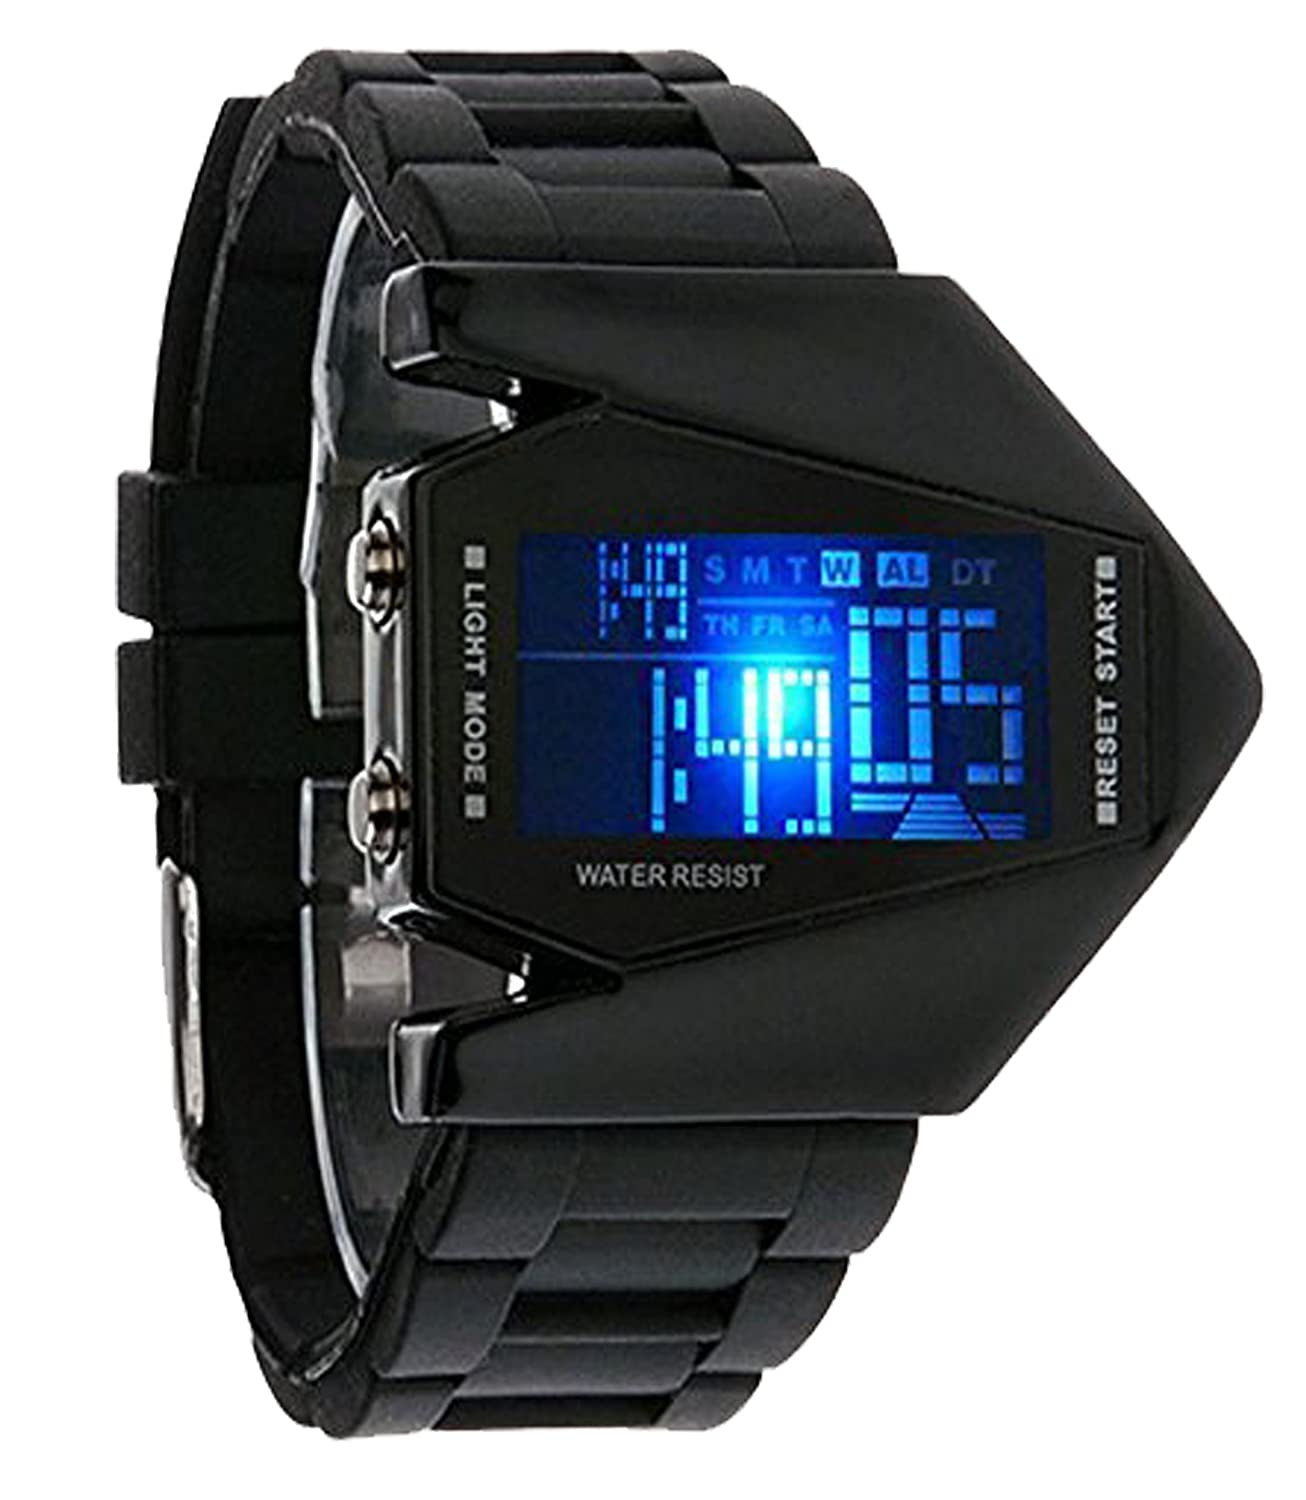 p box photo casio holder ae complete style c watch manual ring new with and cring watches brand